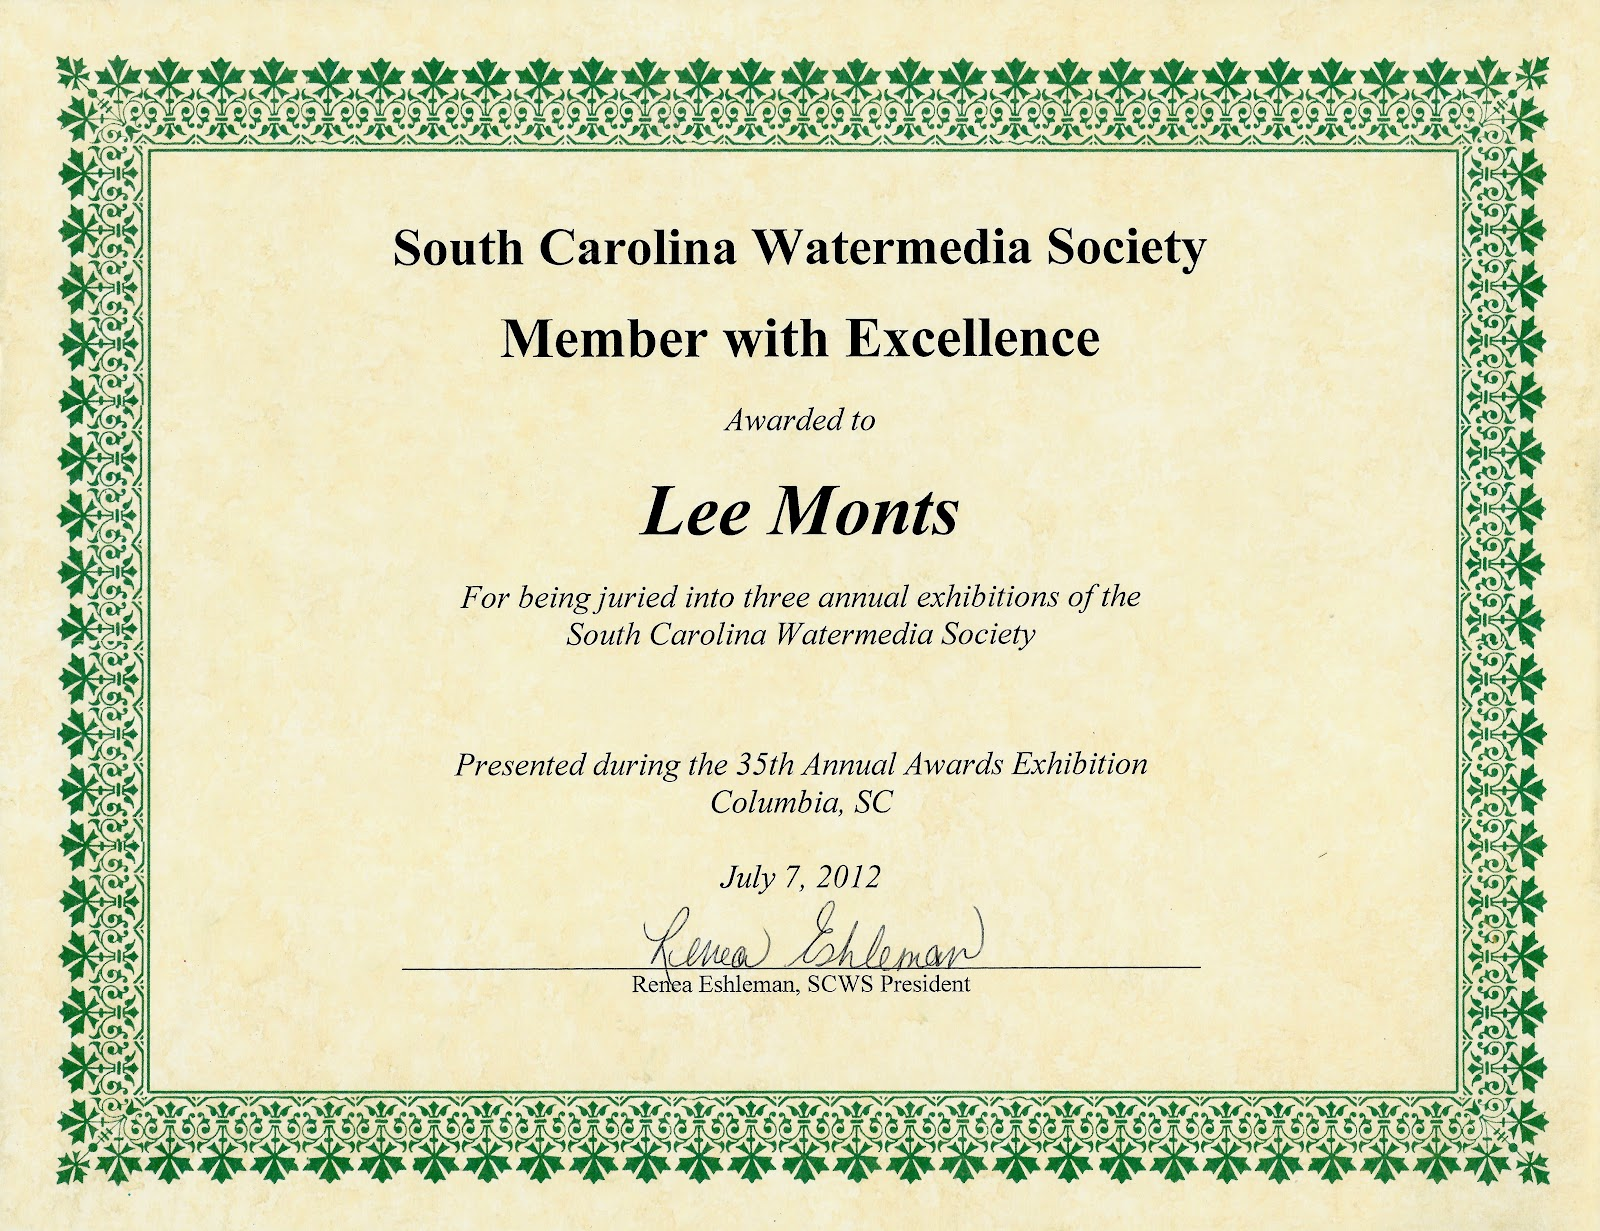 323 Art Lee Monts The Certificate